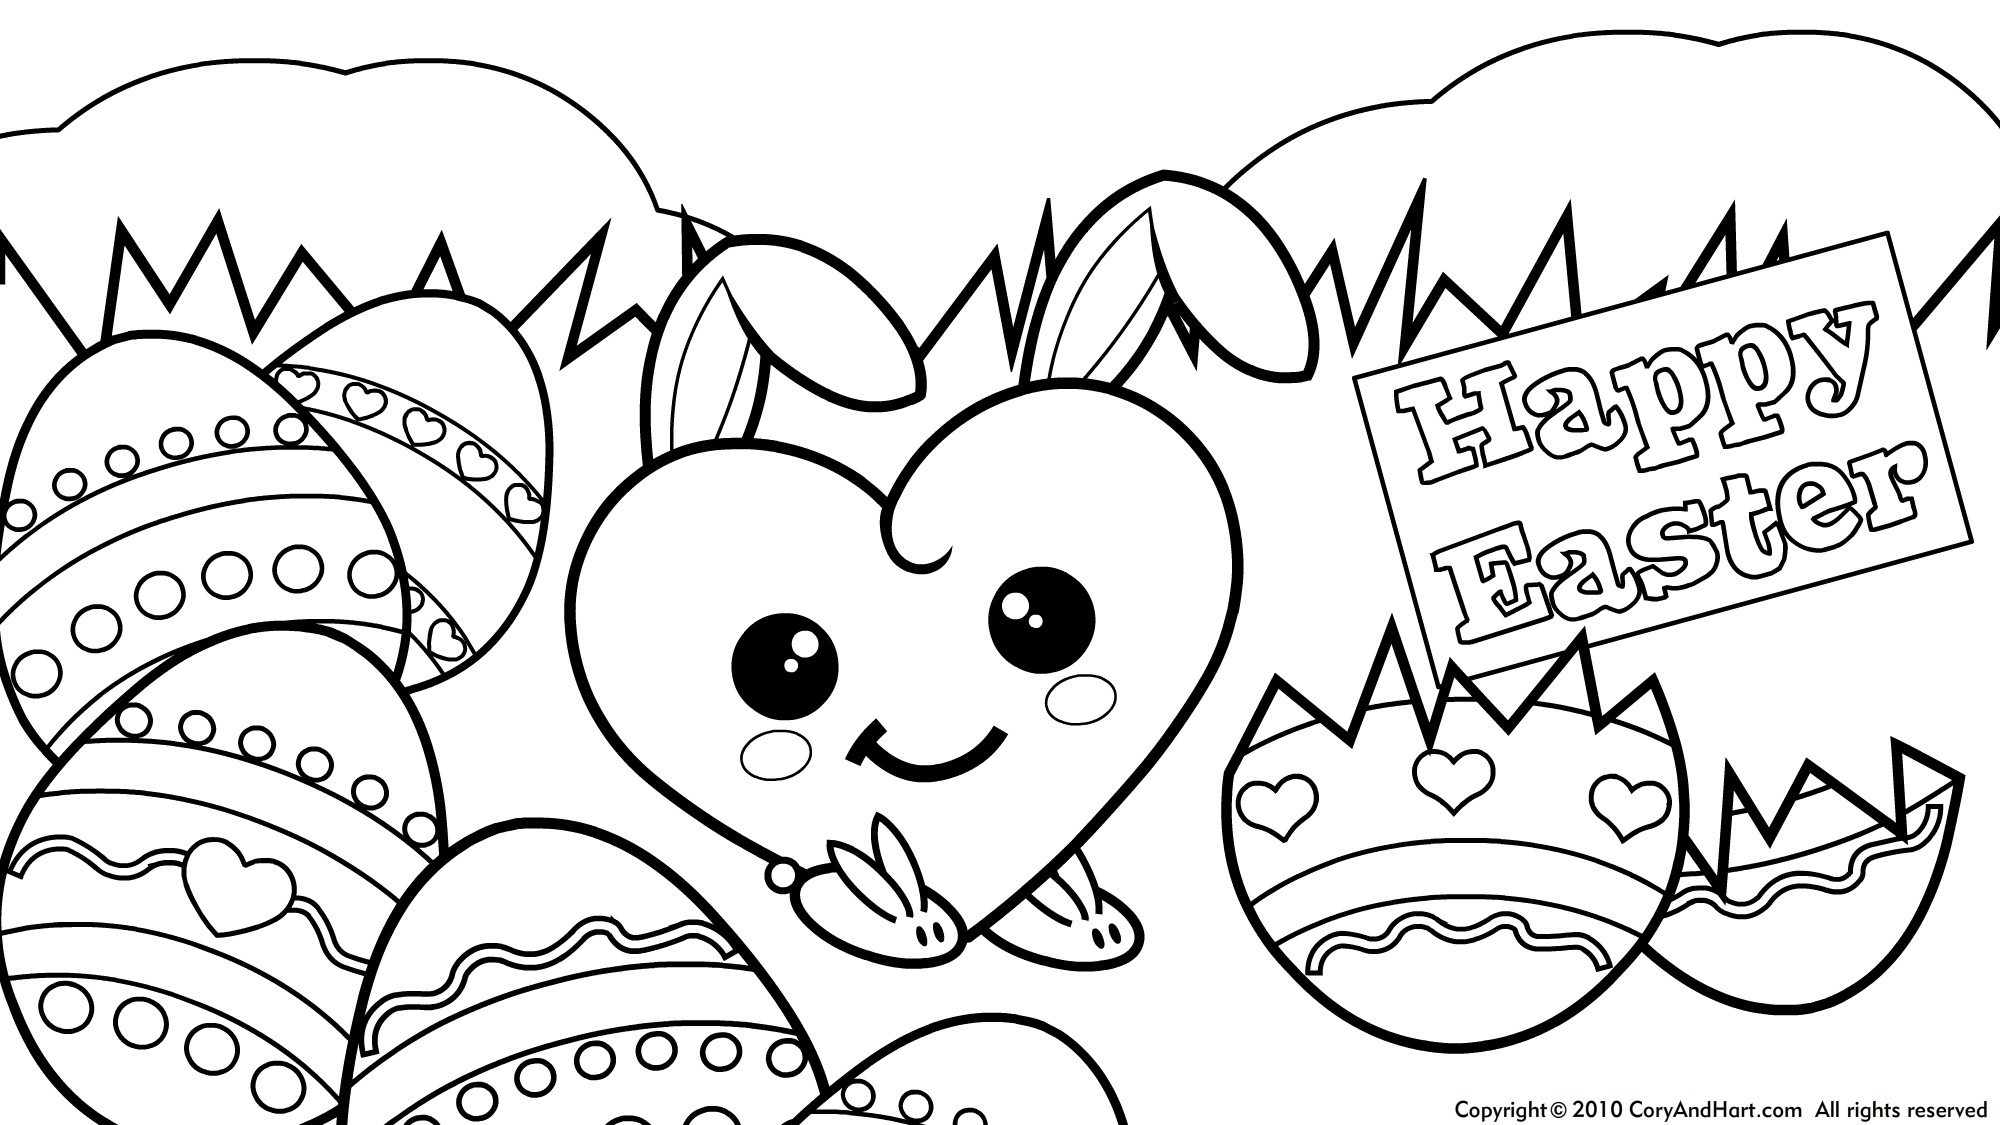 Free Printable Easter Coloring Pages - Bitslice - Free Printable Easter Coloring Pictures